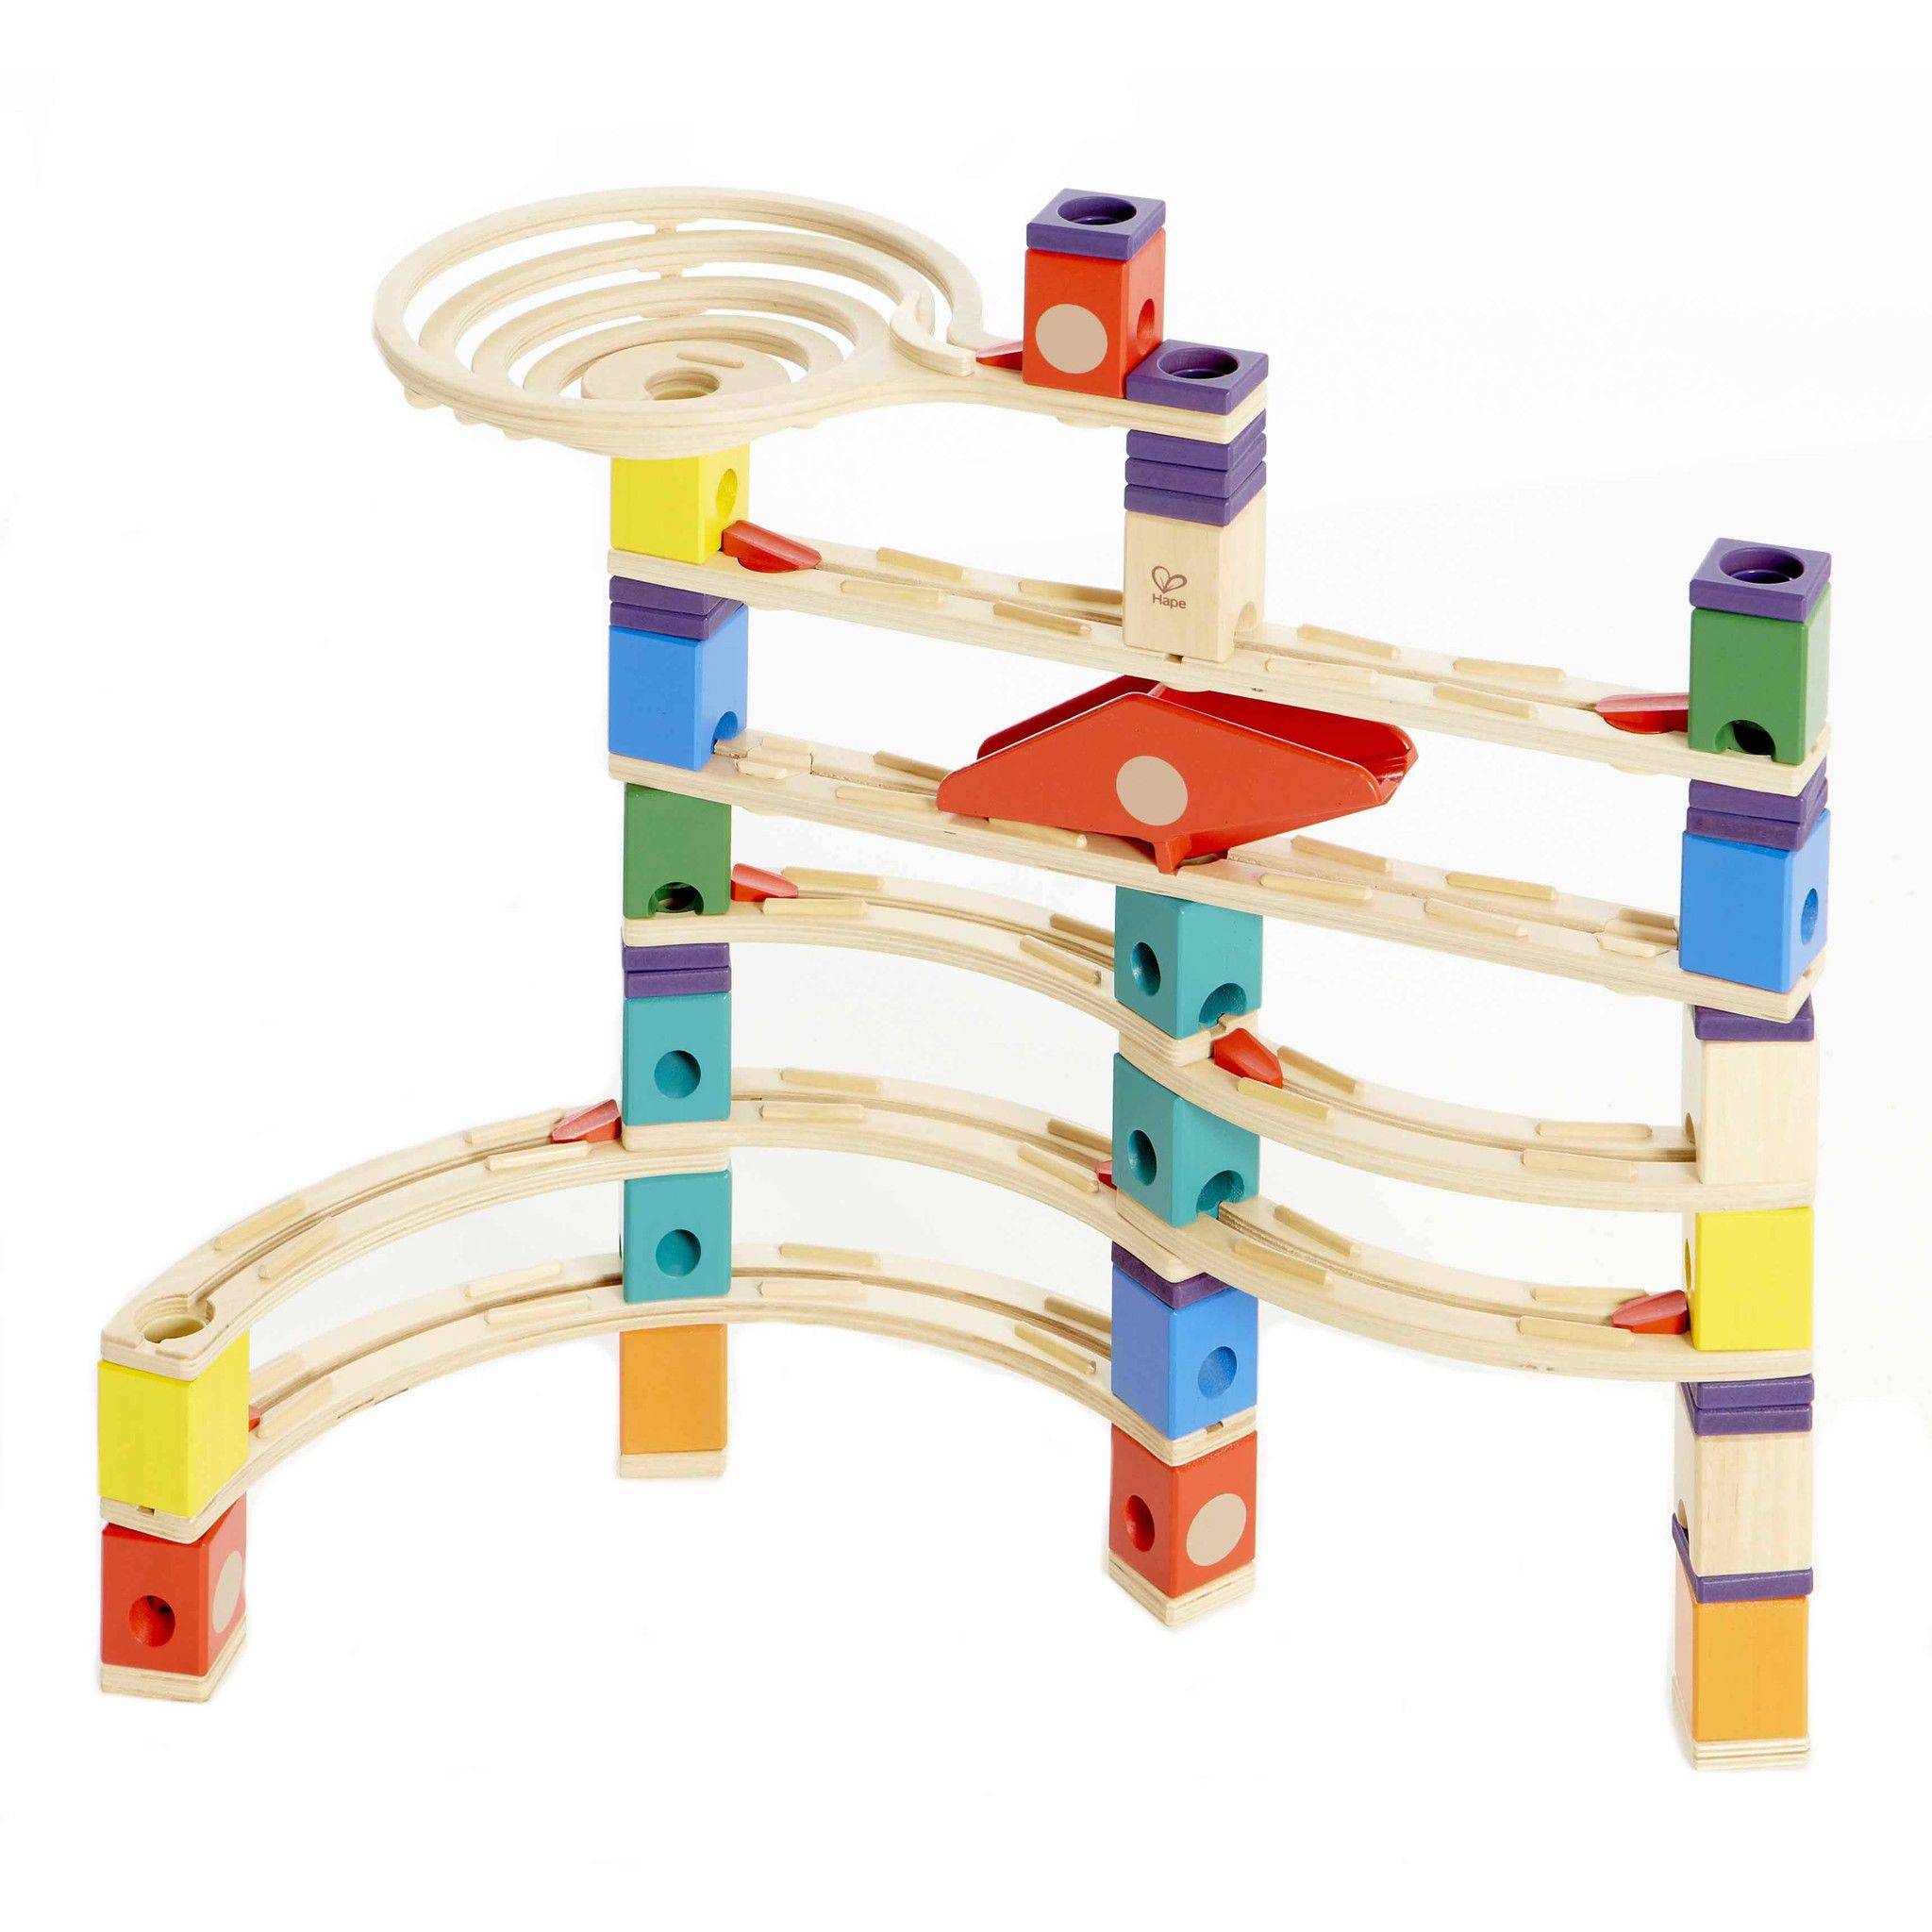 Explore a world of building with our Quadrilla Xcellerator Marble Run Set by Hape. The 136 pieces include a mix of spirals, straightaways, accelerators, a seesaw, and marbles. This set can be configur